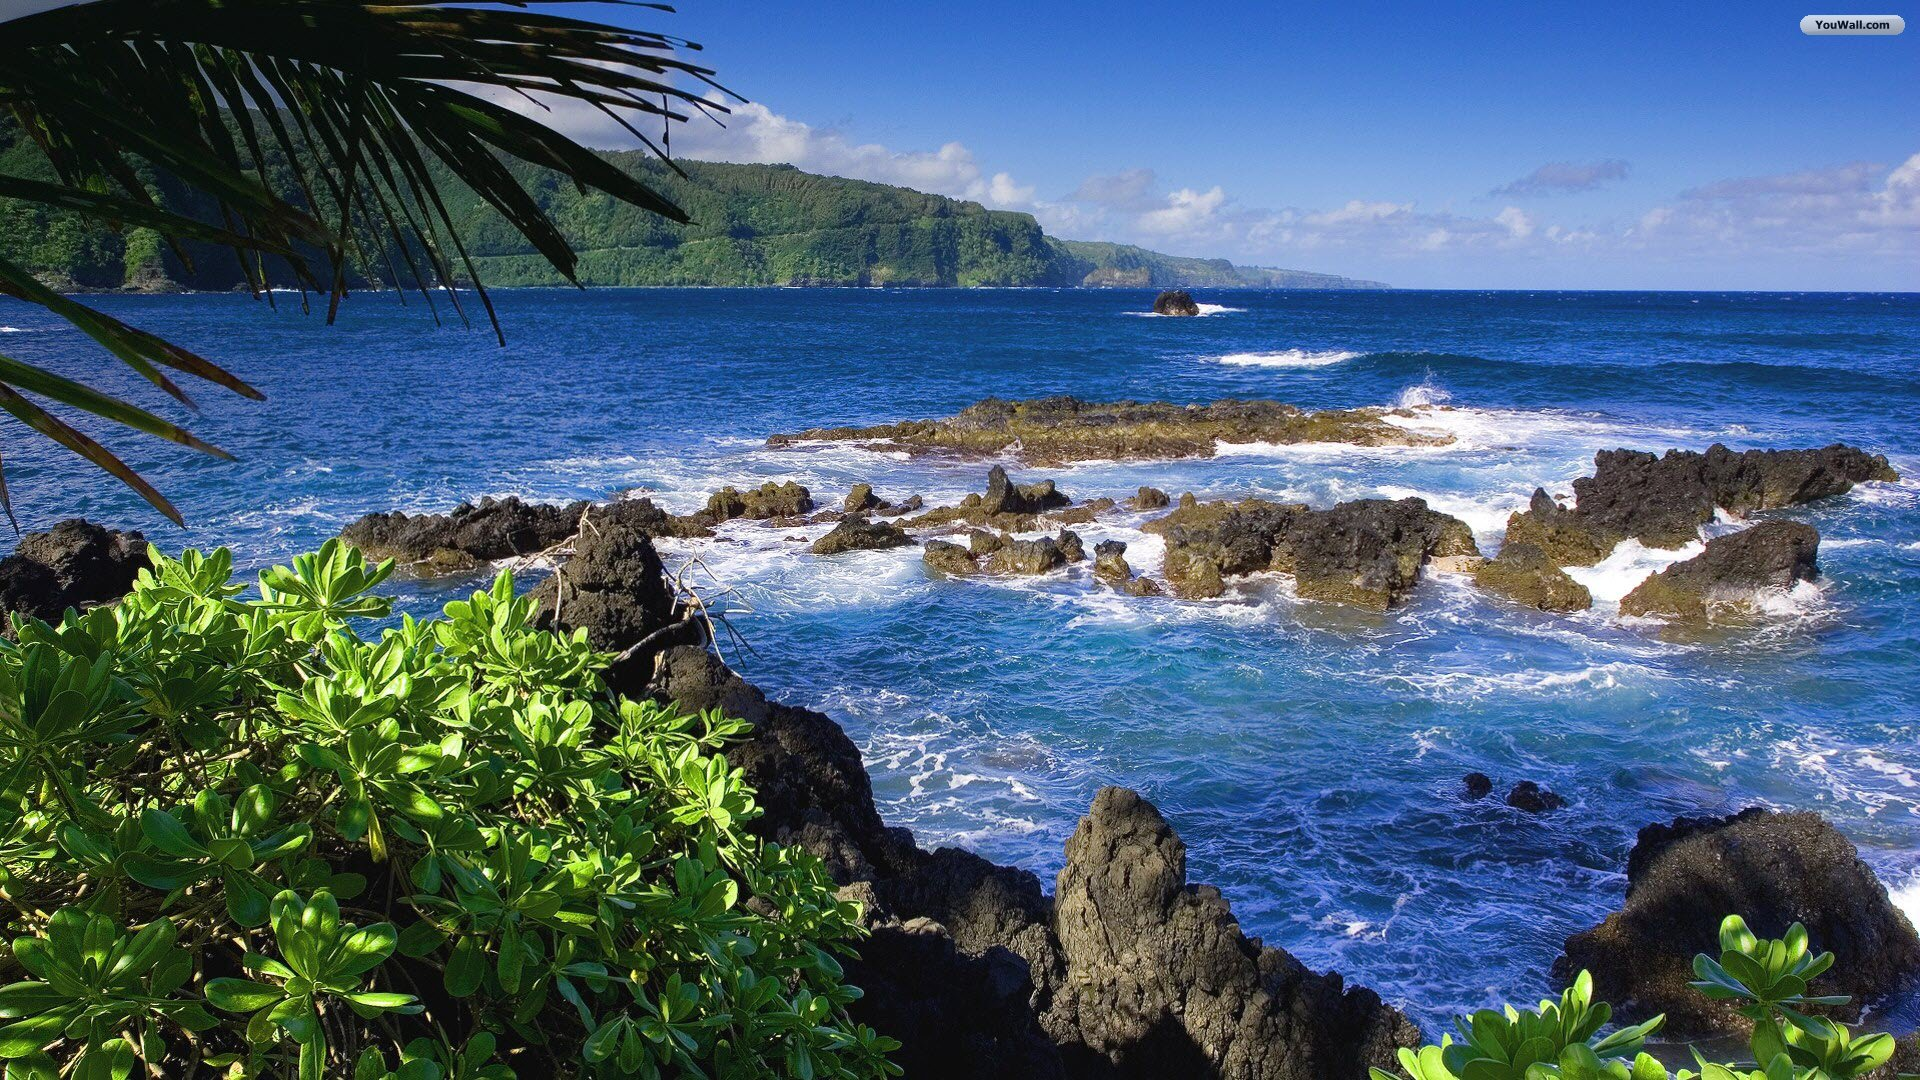 YouWall   Hawaii Beach Wallpaper   wallpaperwallpapersfree wallpaper 1920x1080